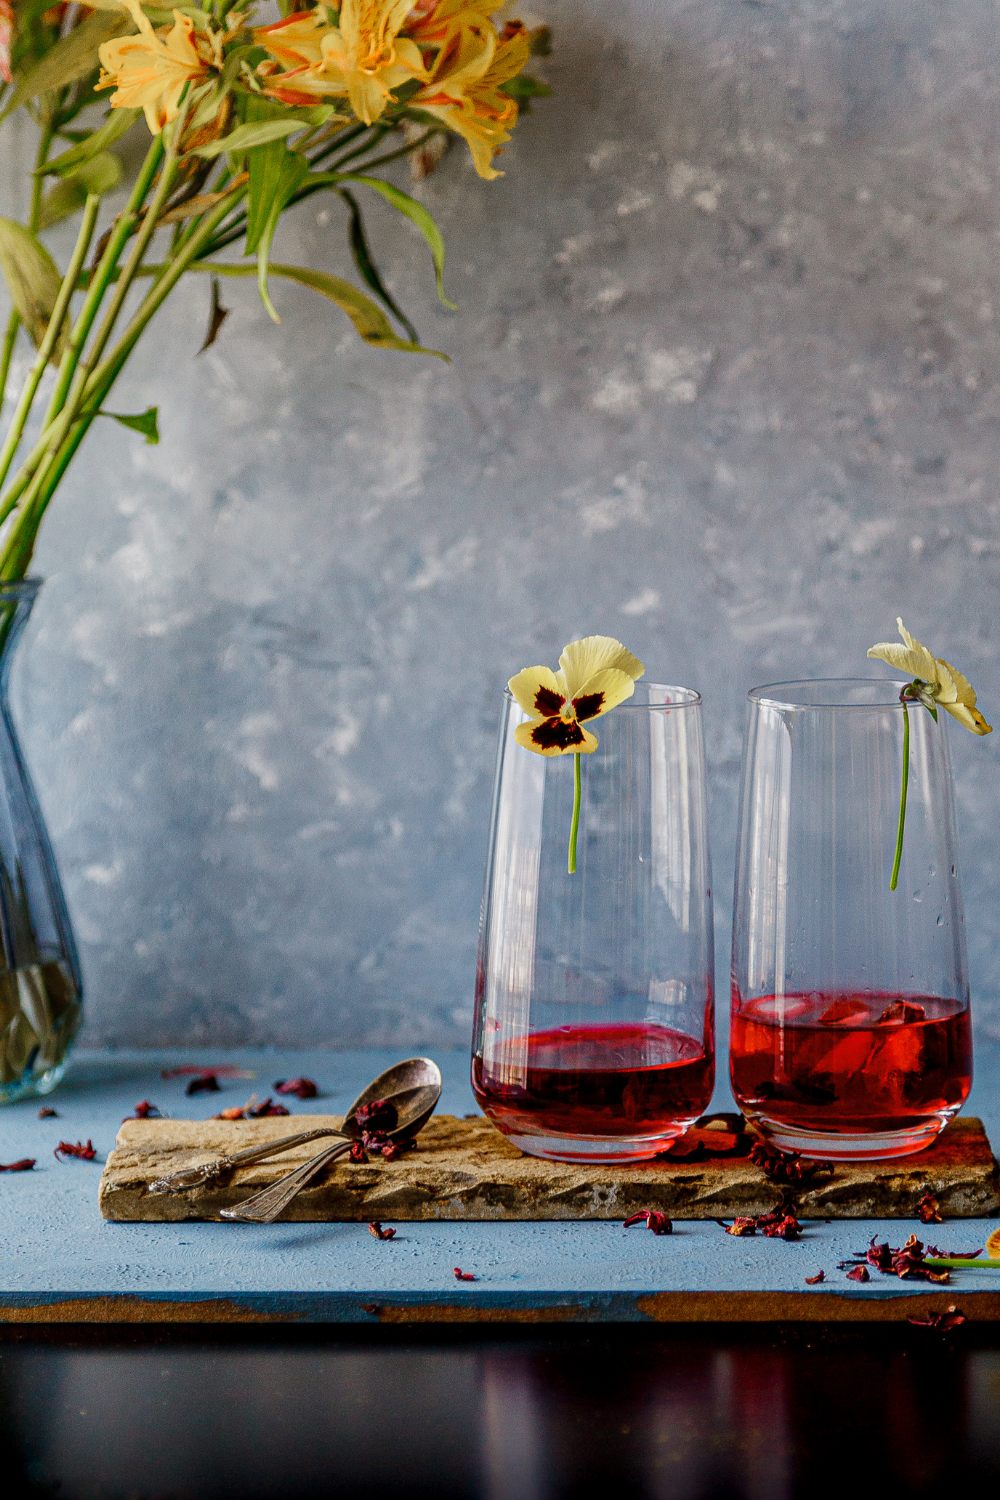 Hibiscus chilled Karkade tea served in tall delicate glasses with edible flowers